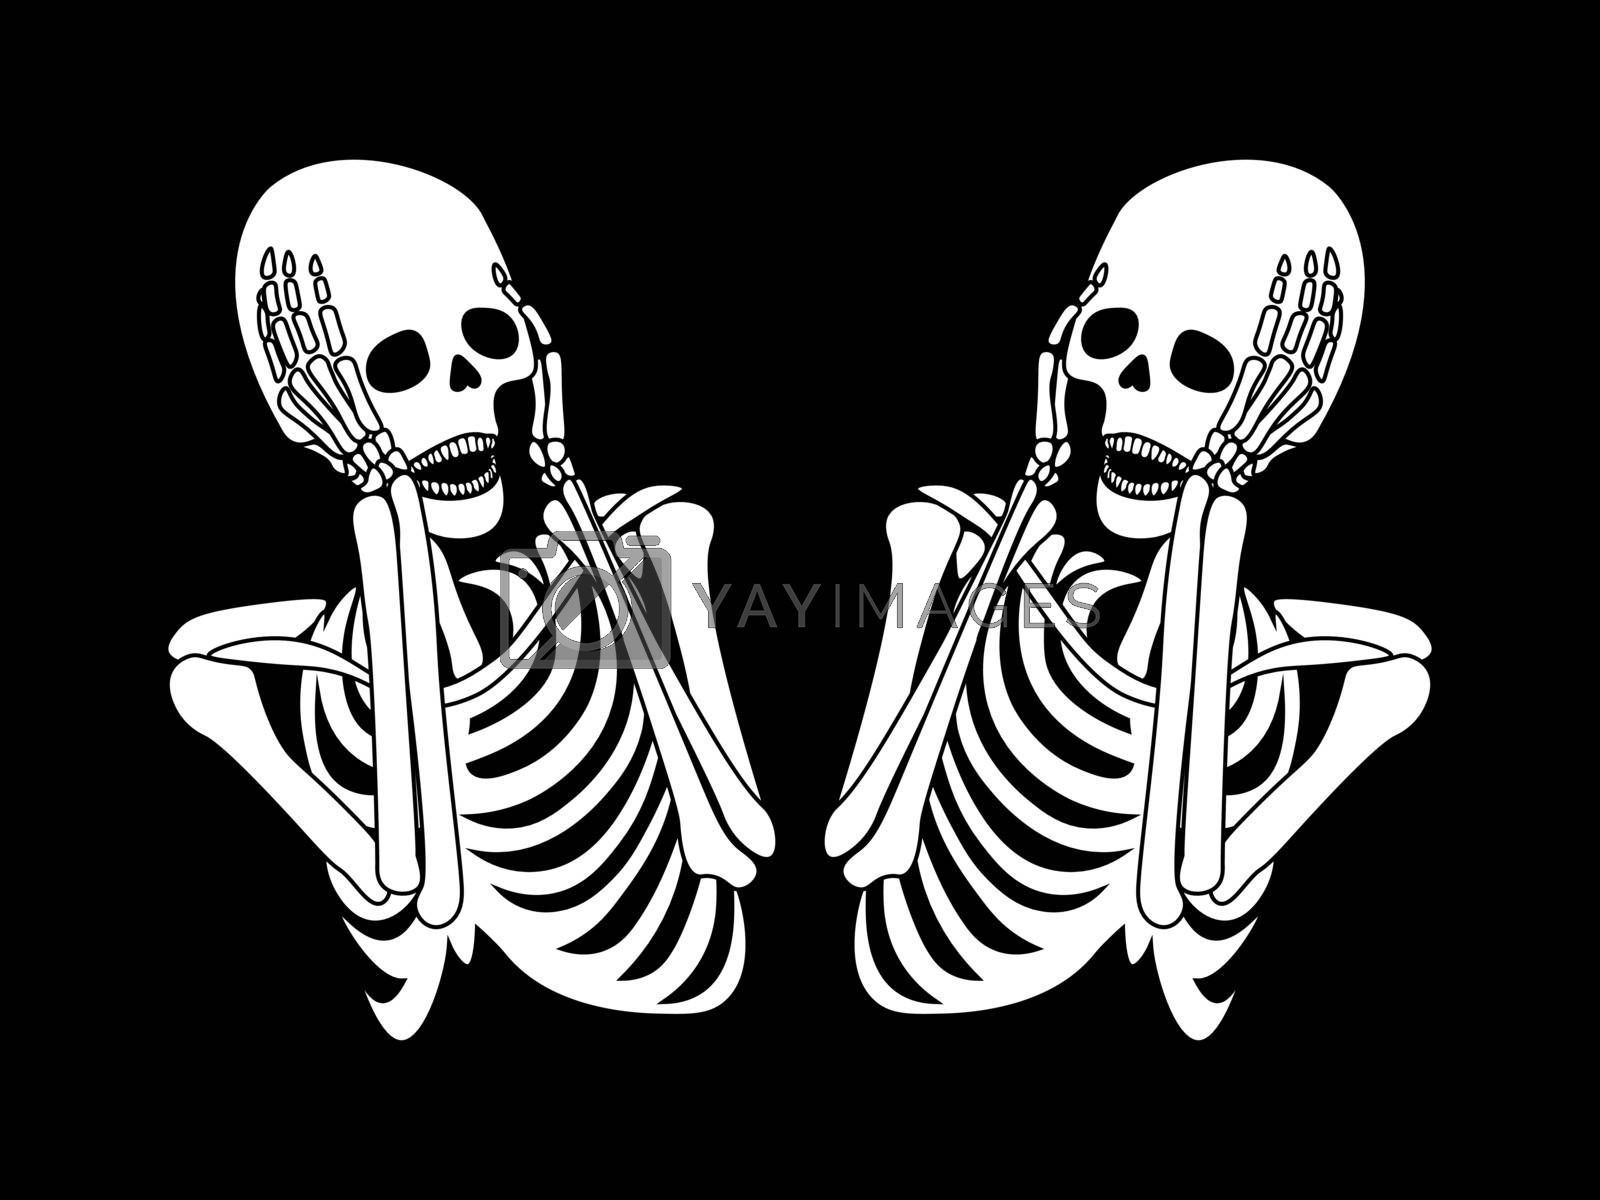 Spooky black and white illustration with two cartoon screaming skeletons